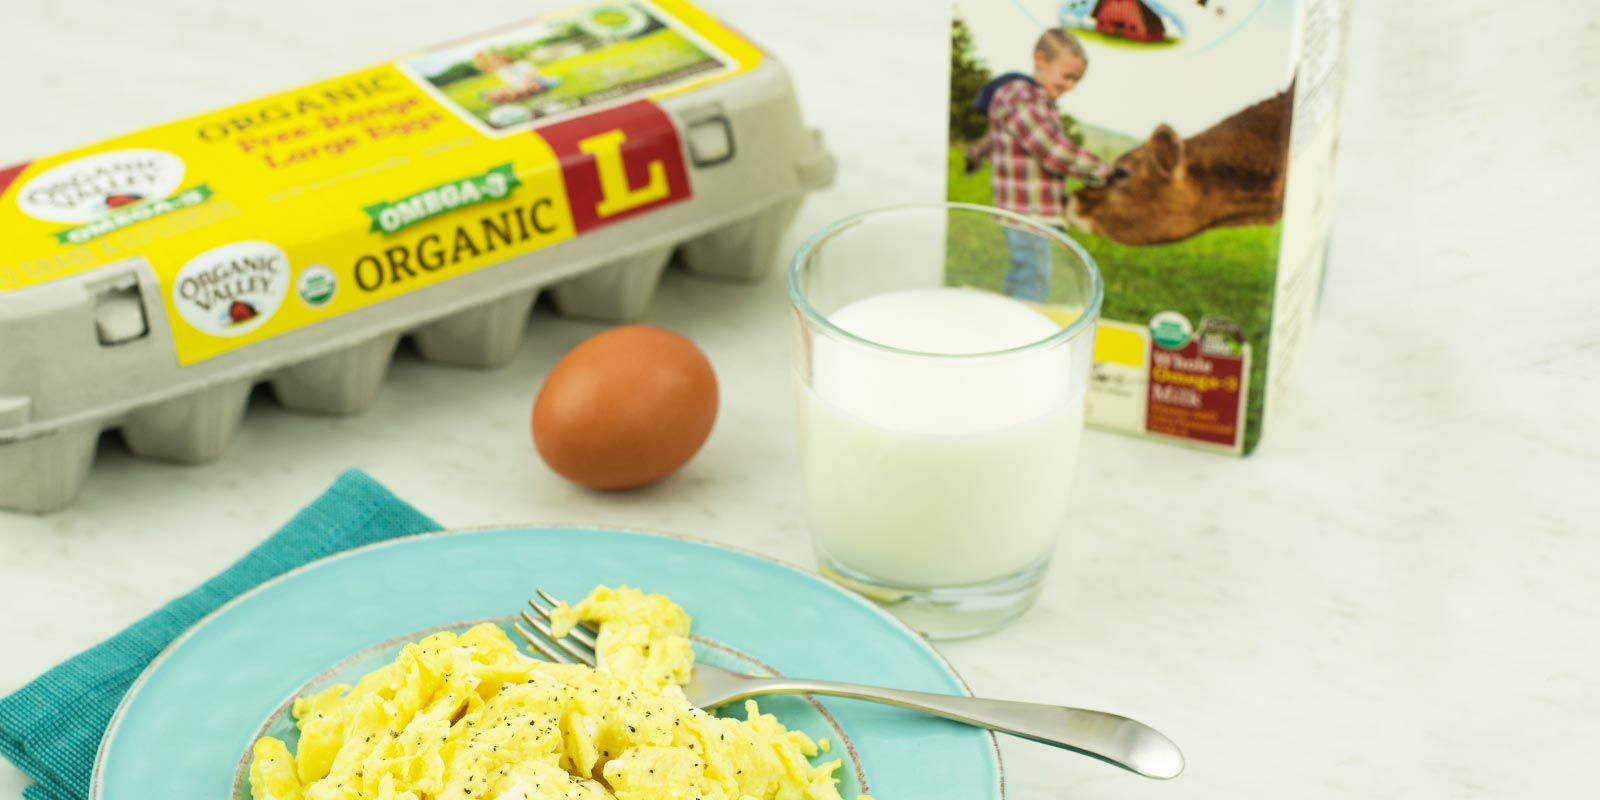 A plate of yellow scrambled eggs next to a glass of milk and a whole egg, all in front of a carton of Organic Valley Omega-3 Eggs and a carton of Organic Valley Omega-3 Milk.